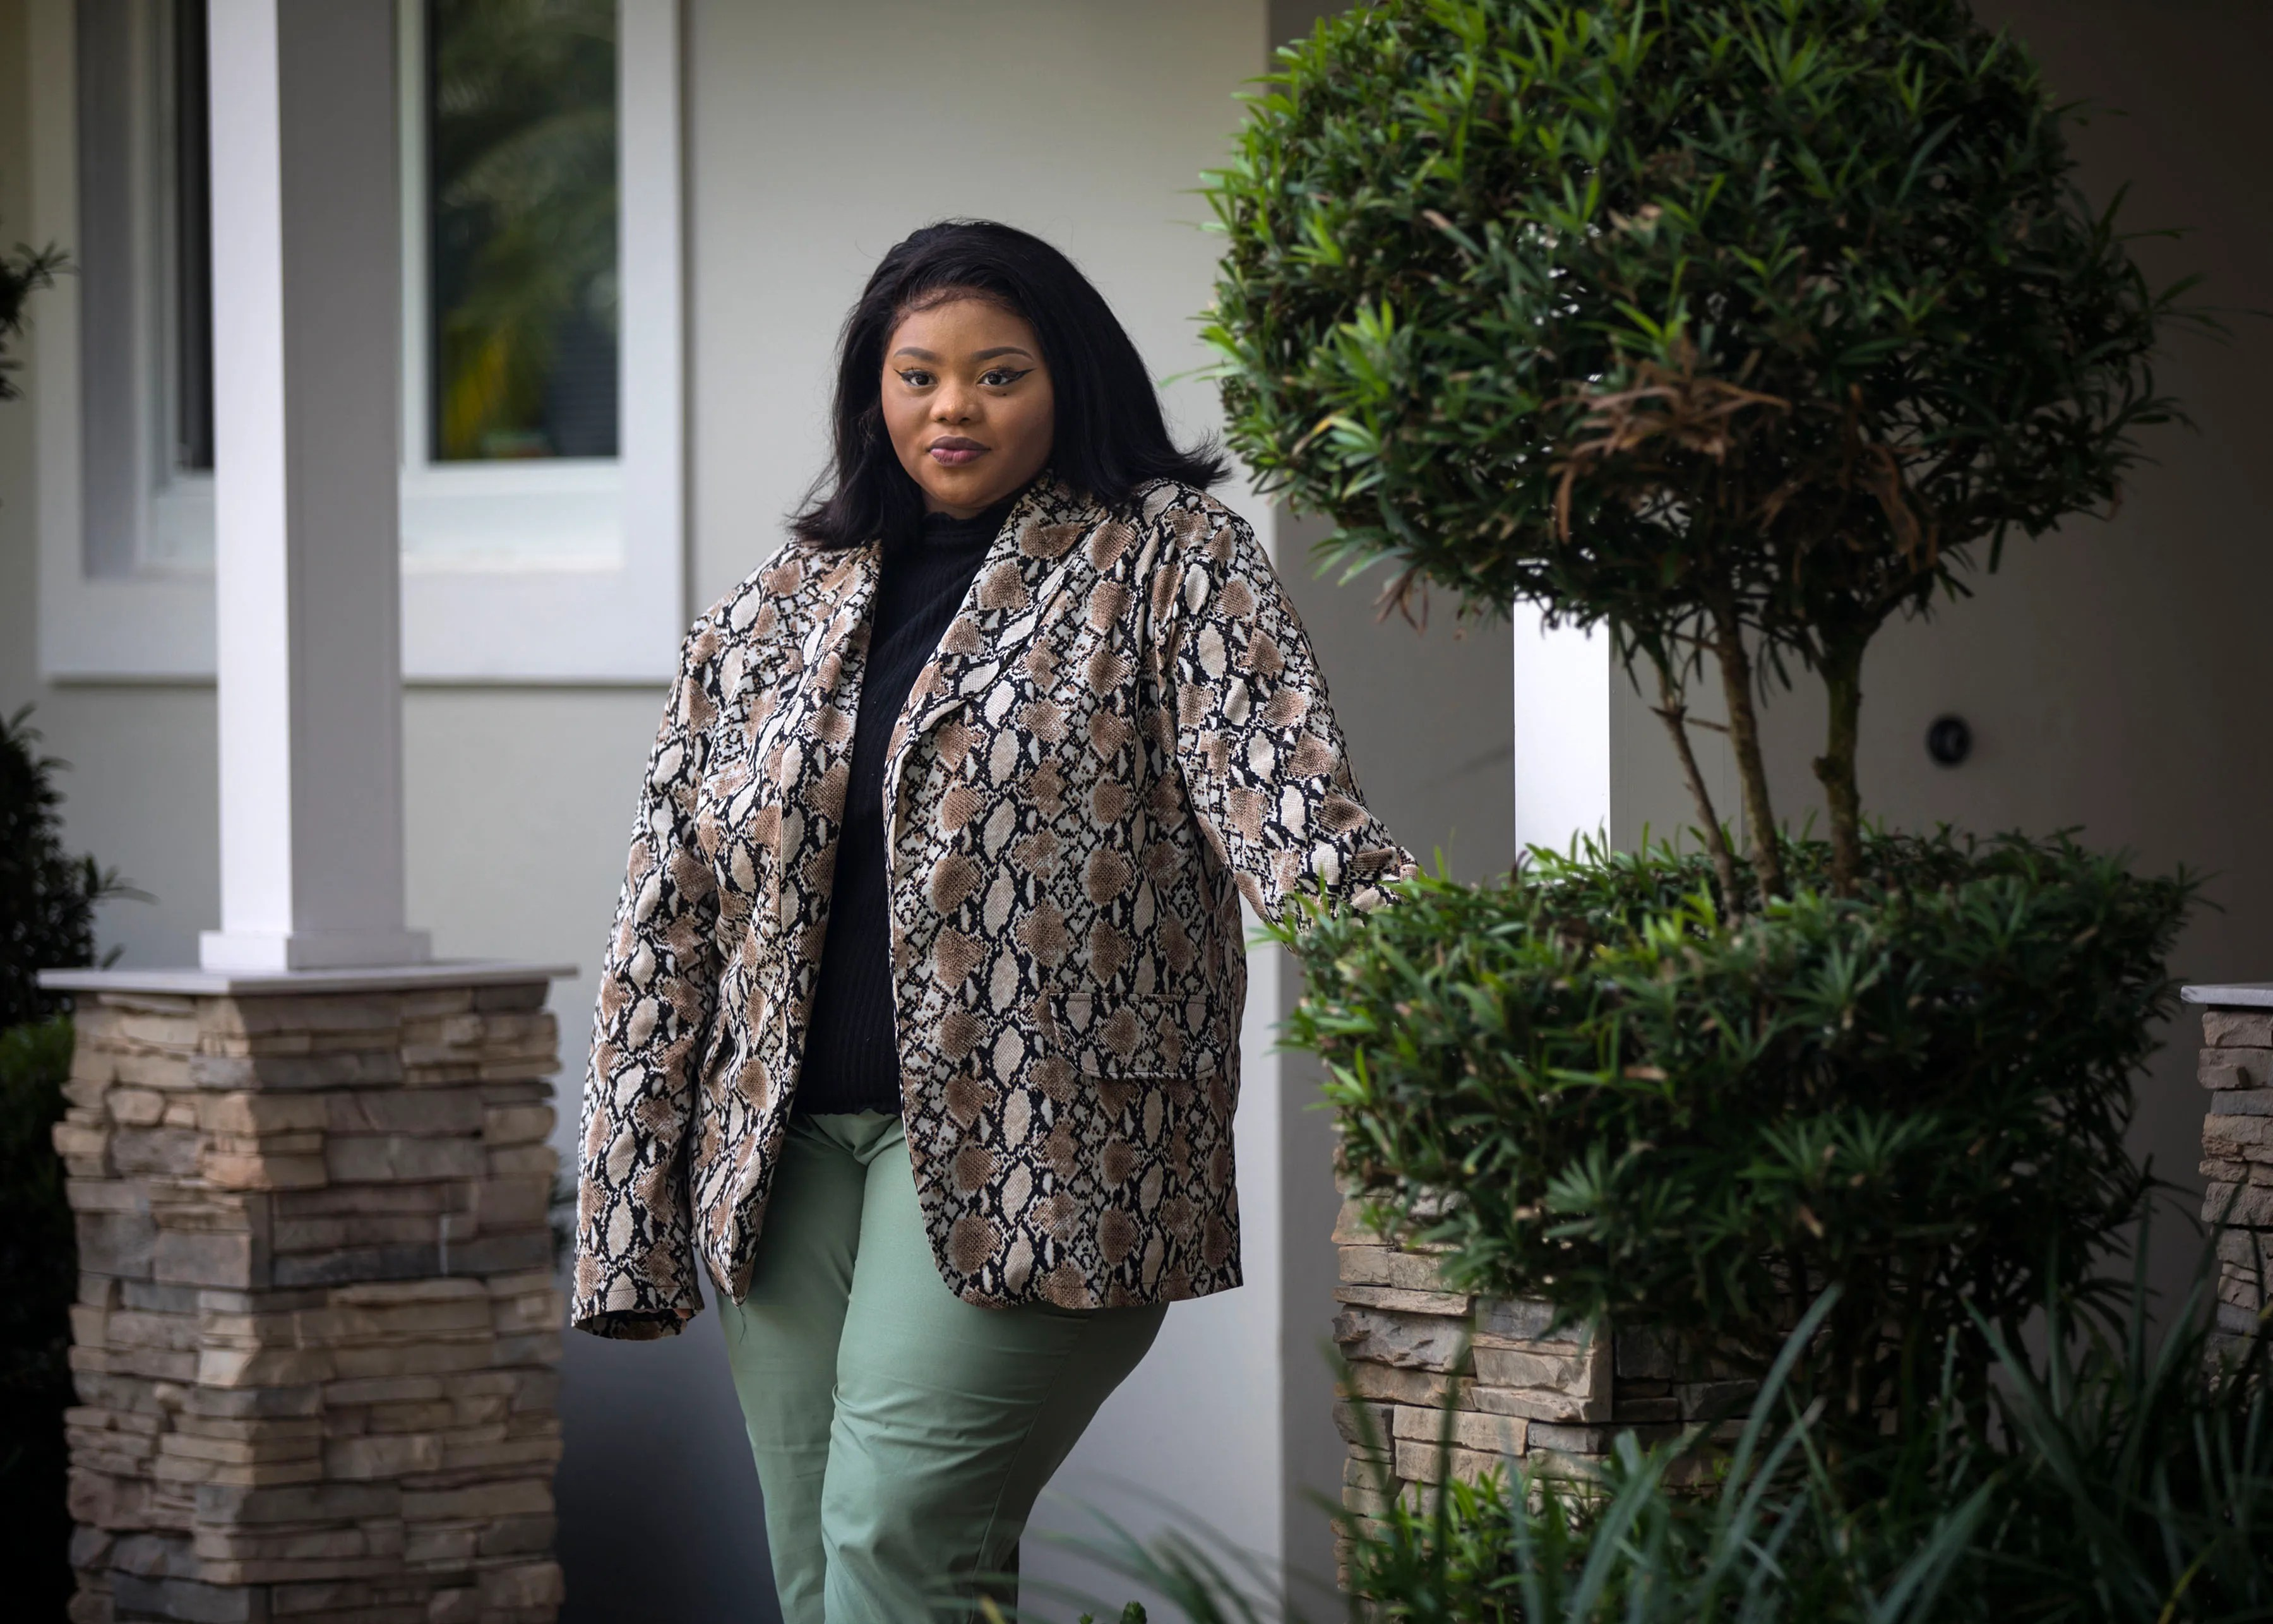 Shakyiah Cargill entered the foster care system at age 11 and lived in both foster and group homes until she was 18.